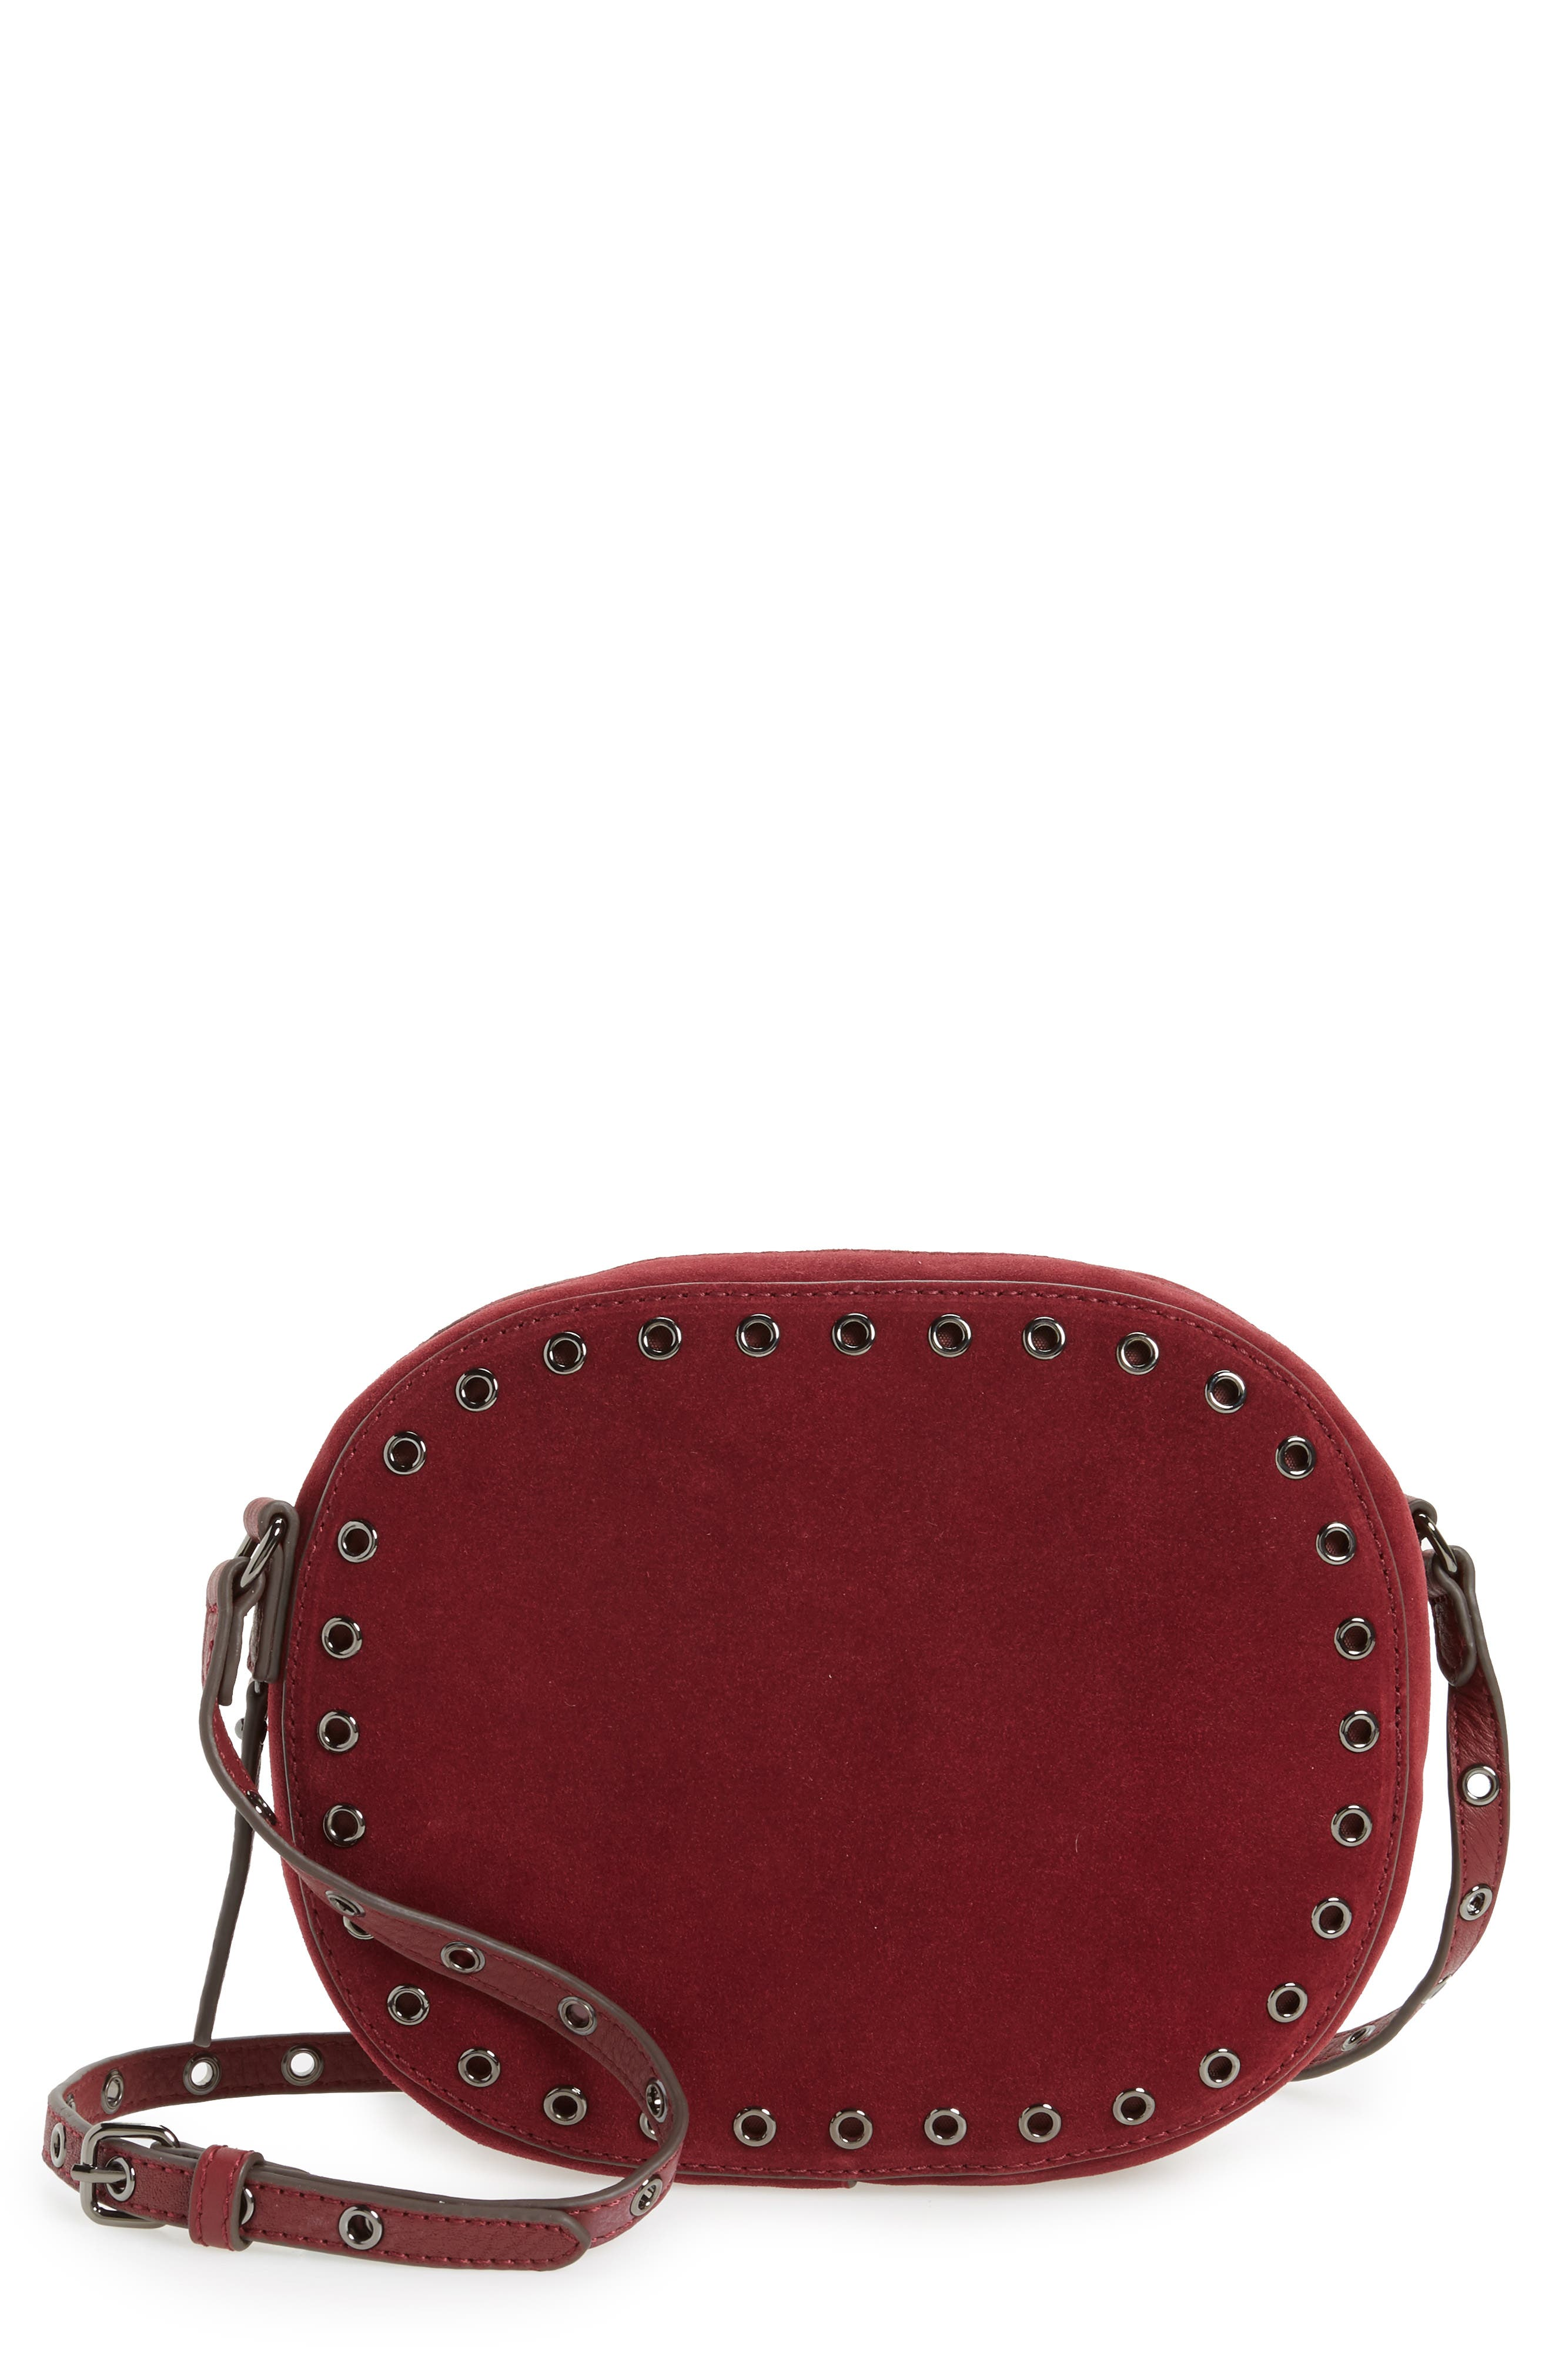 Vince Camuto Areli Suede & Leather Crossbody Bag